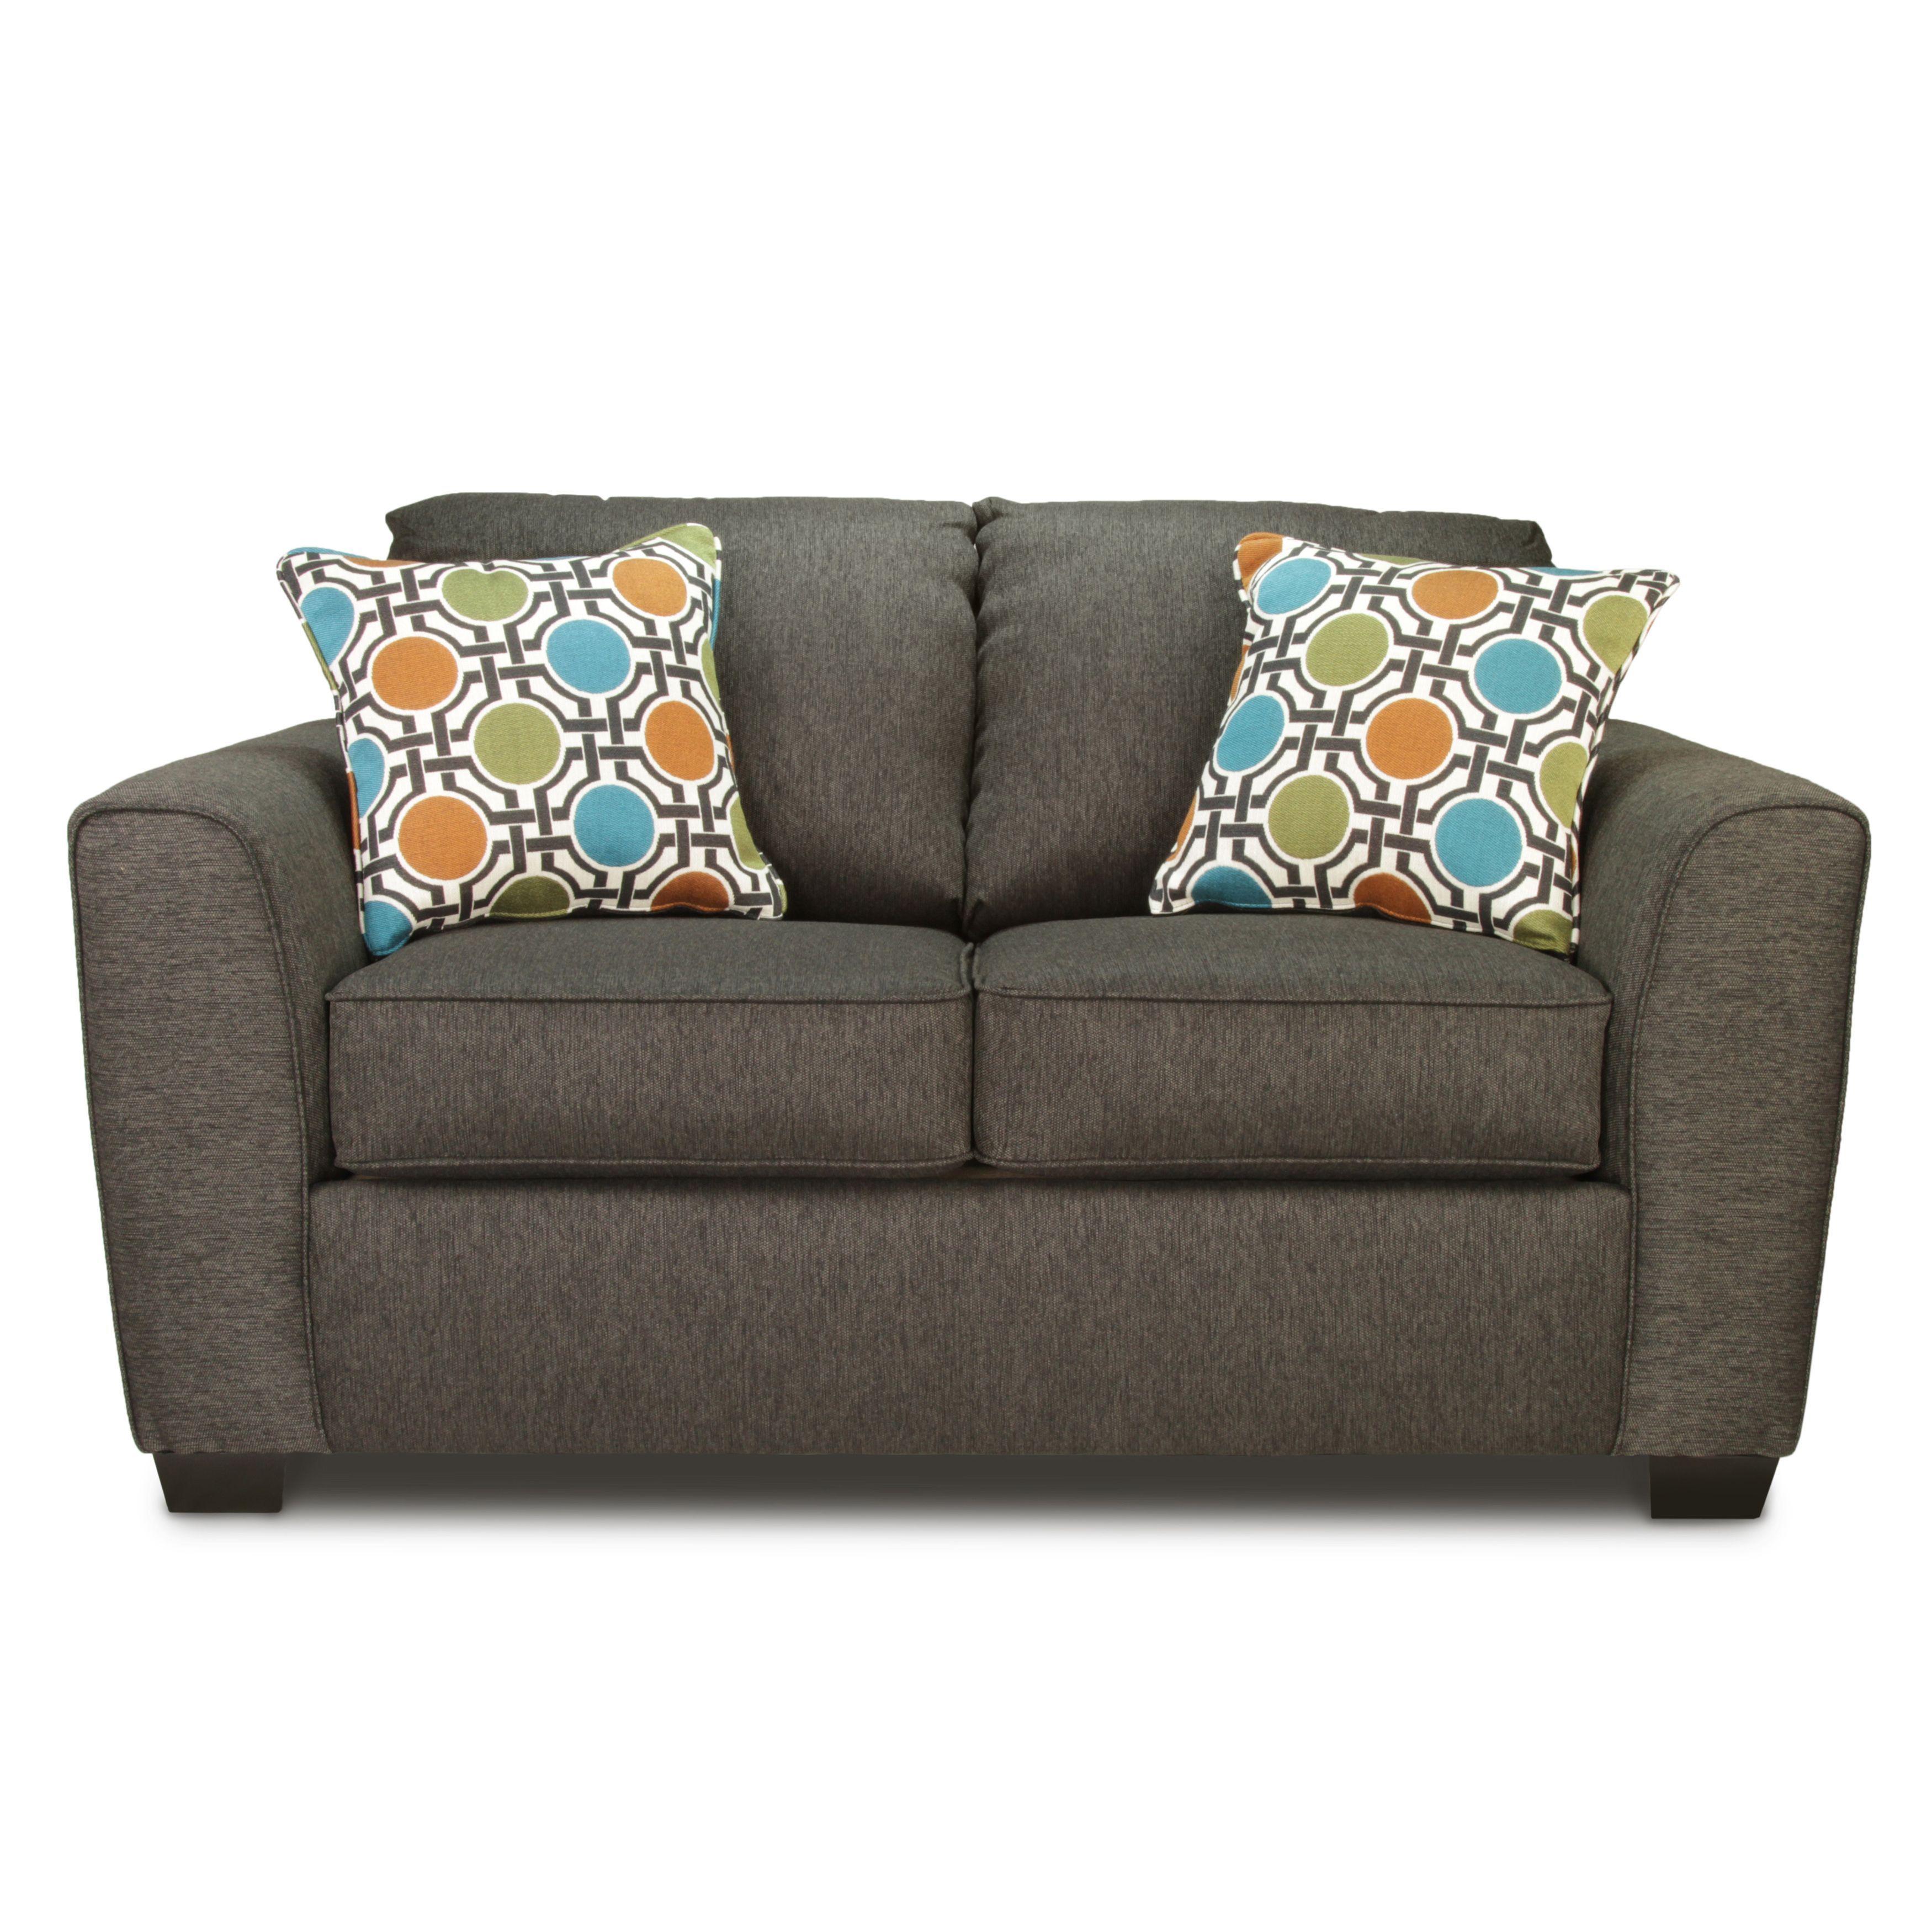 Cool Furniture Of America Playan Charcoal Upholstered Loveseat Gamerscity Chair Design For Home Gamerscityorg